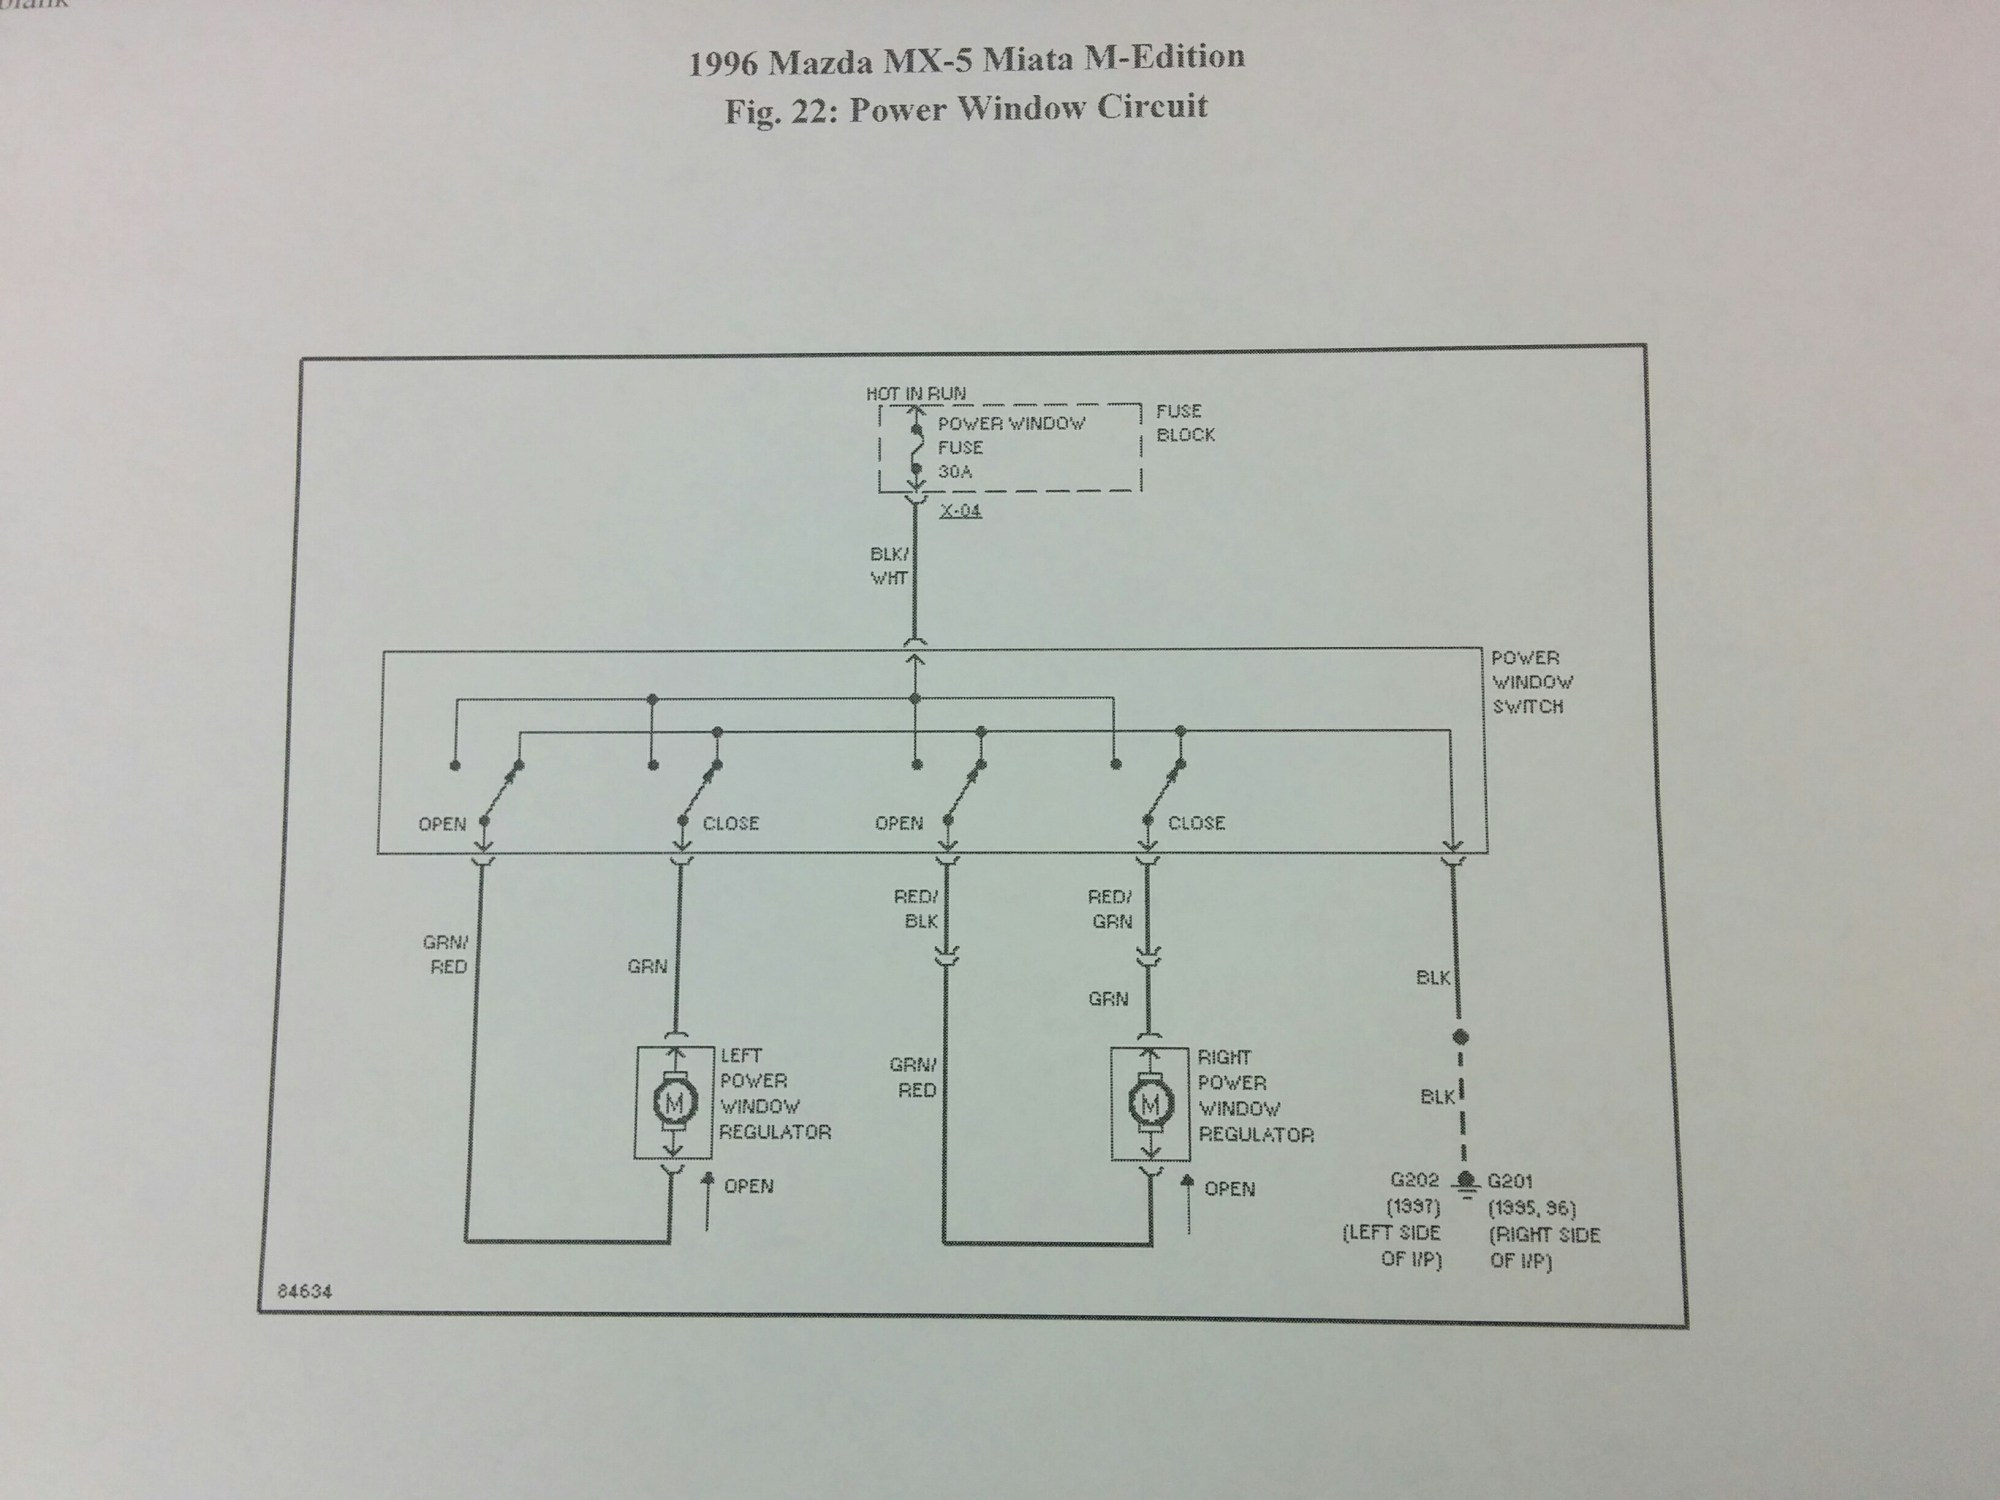 hight resolution of this is the wiring diagram for the power window switch for a 1996 mazda miata m edition on the top you see the 30 amp power window fuse located in the